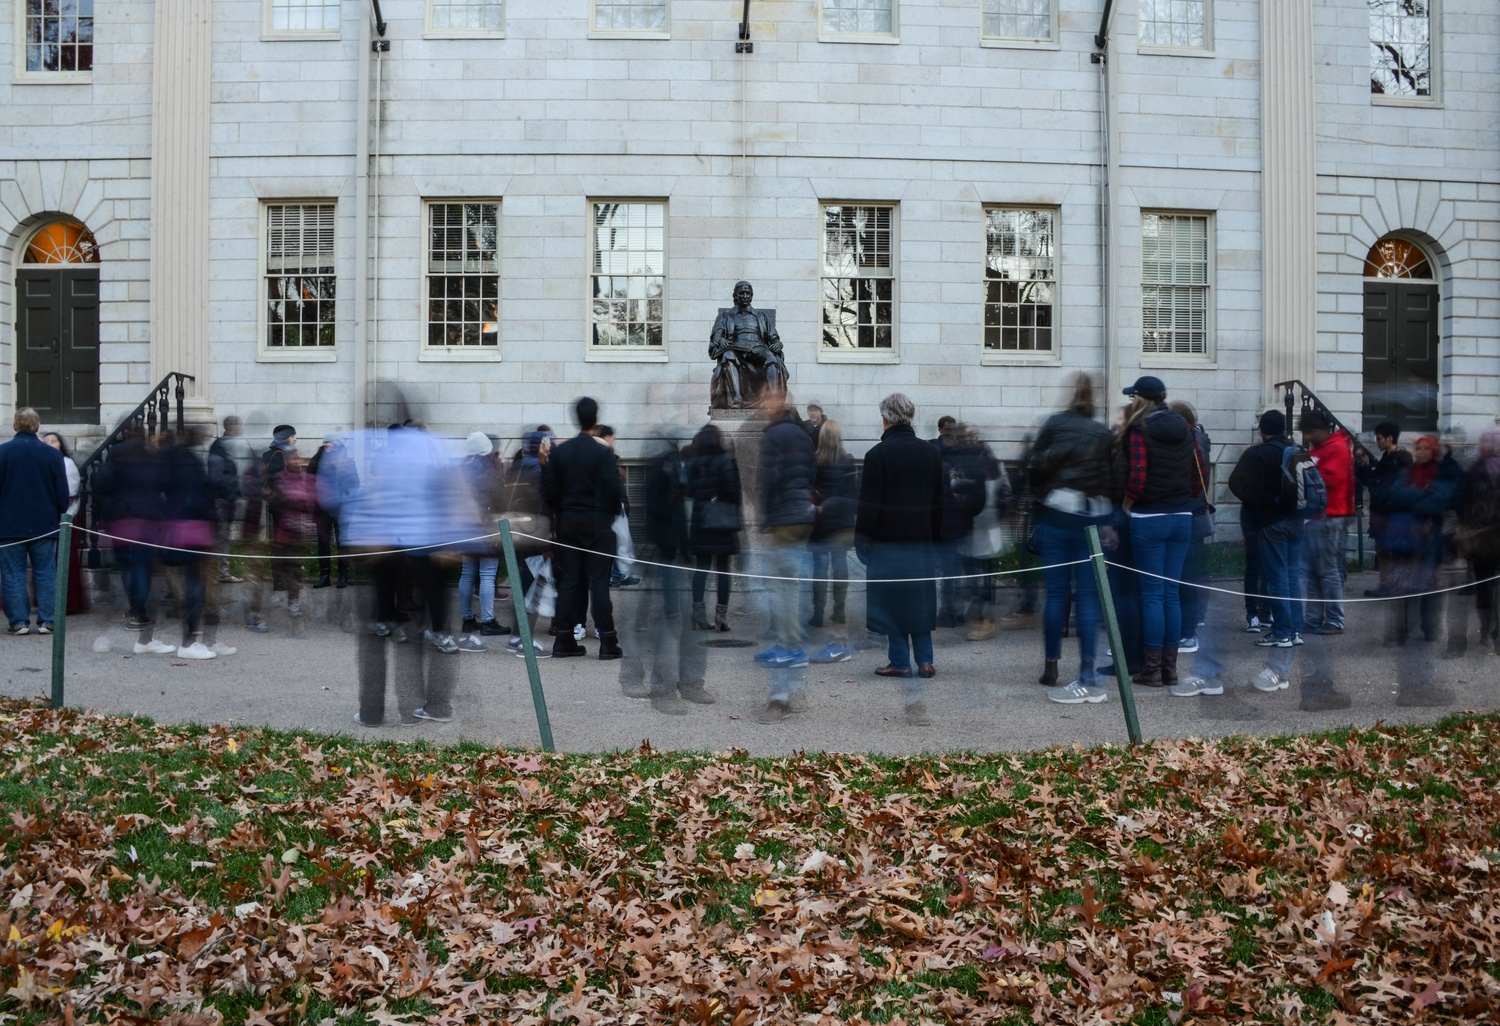 A stream of tourists passes John Harvard Statue, a famous tourist destination of the campus and Boston itself. The statue is the third most photographed in the US behind the Statue of Liberty and the Lincoln Memorial.